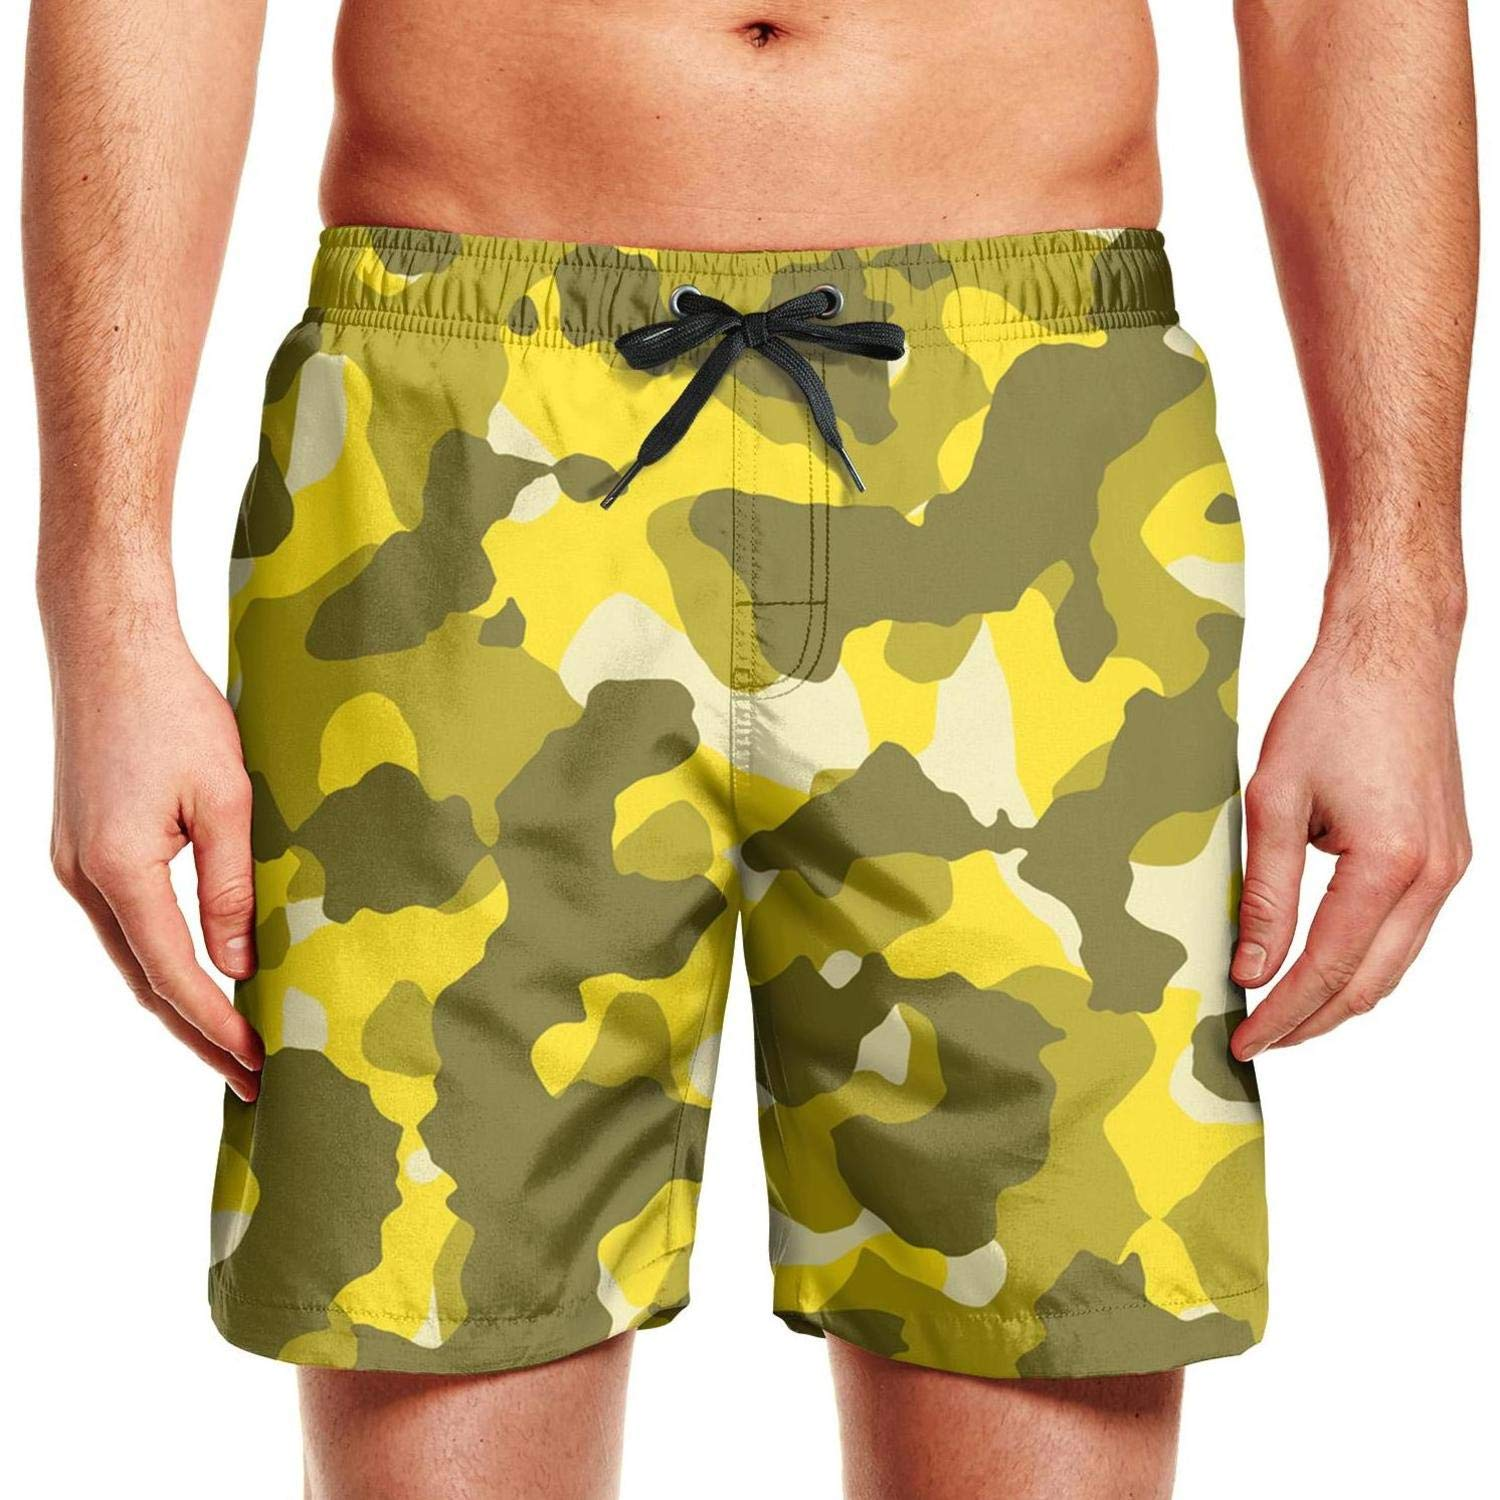 FPPING Mens Red Leafy Camo Adjustable Swimming Beach Swim Trunk